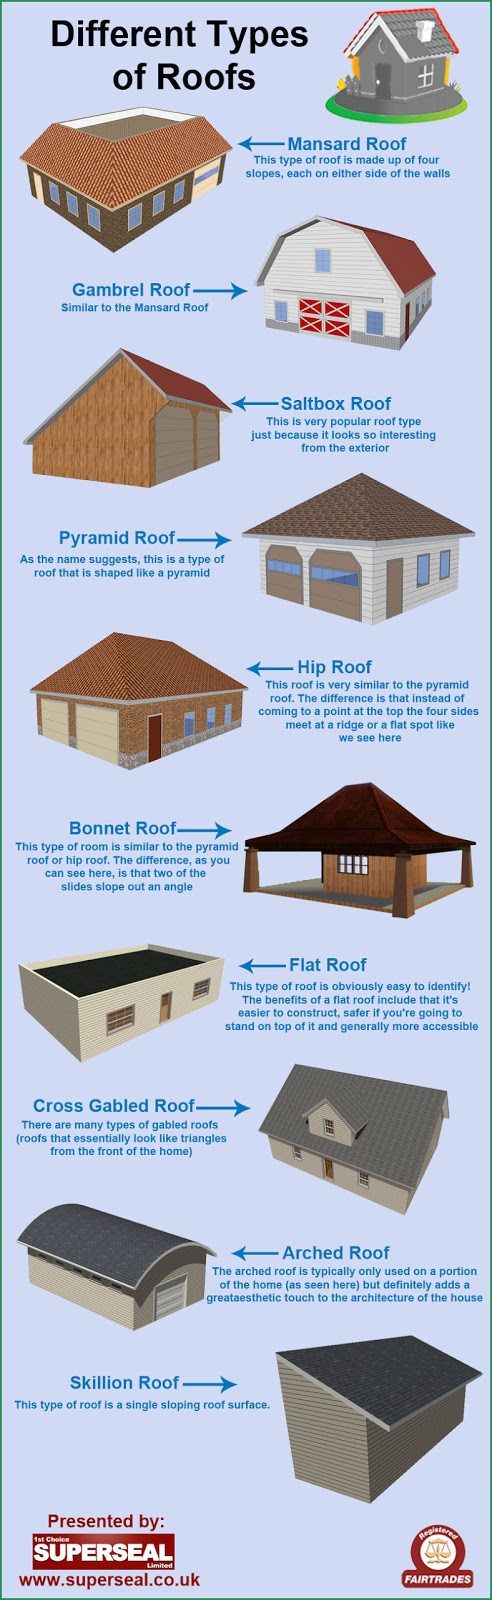 All seasons roofing in utah different types of roofs Type of roofing materials